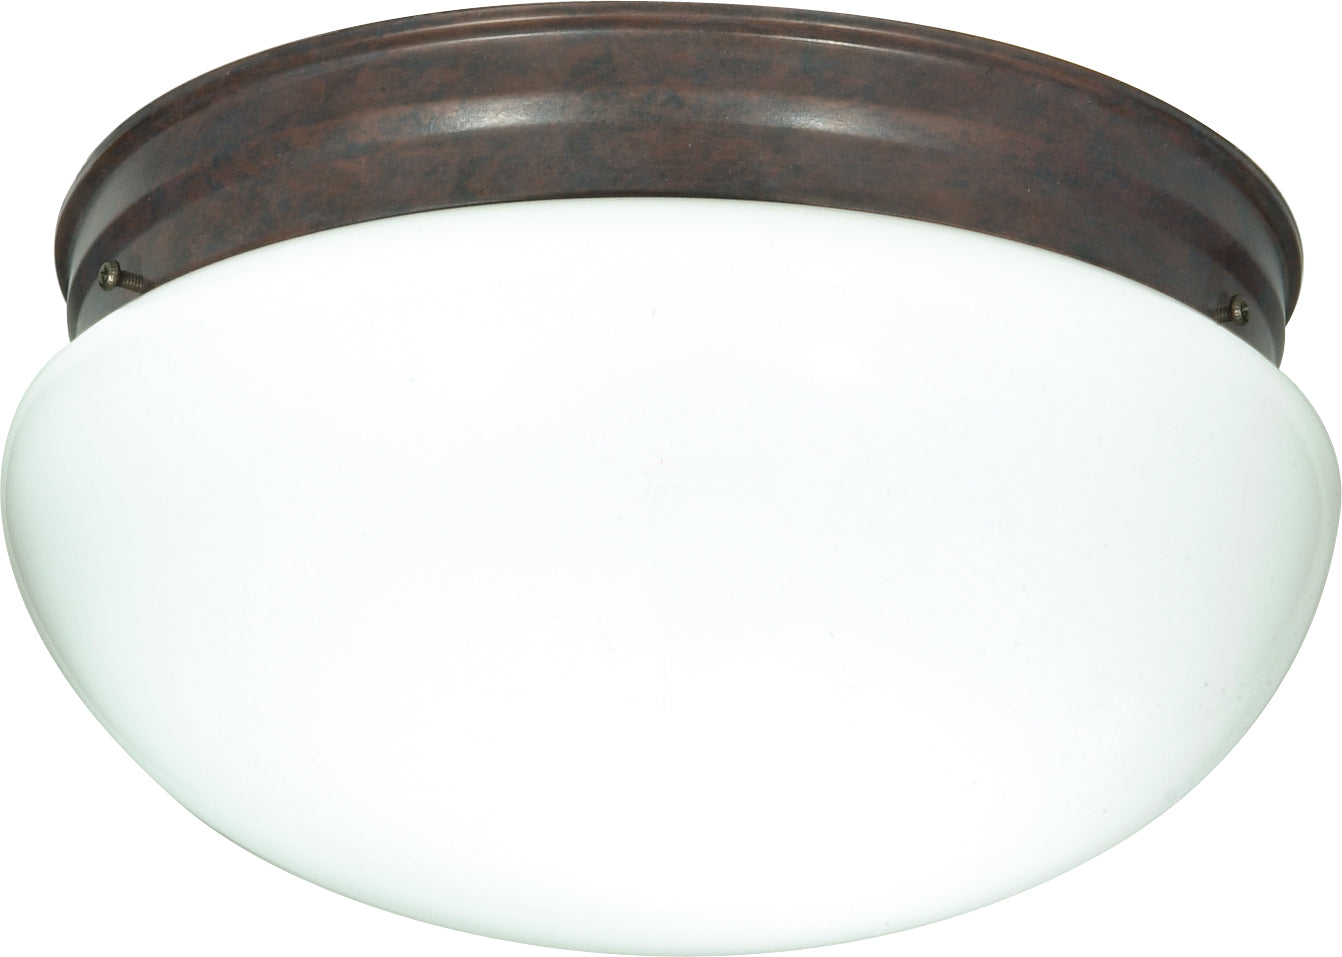 """2-Light 12"""" Flush Mounted Close-to-Ceiling Light Fixture in Old Bronze Finish"""